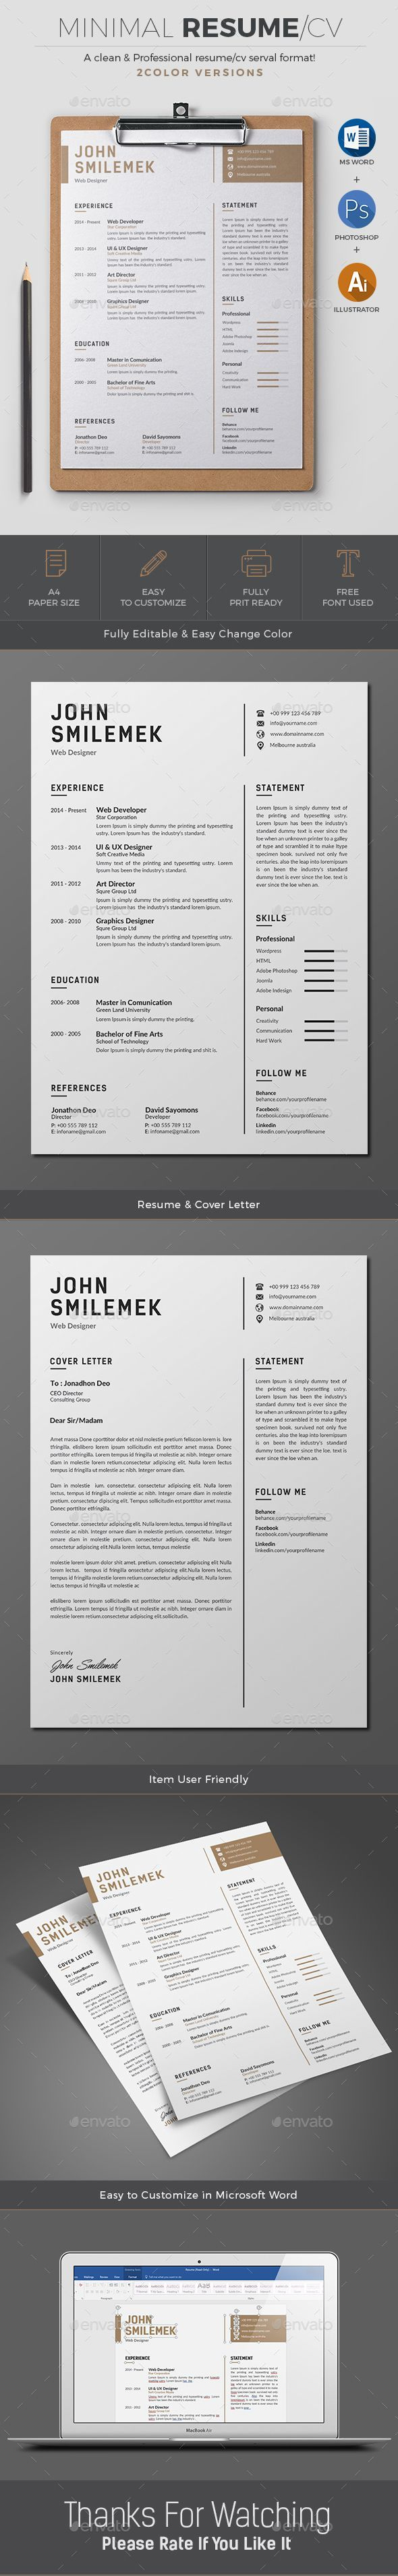 19 best jianli images on Pinterest | Resume templates, Page layout ...